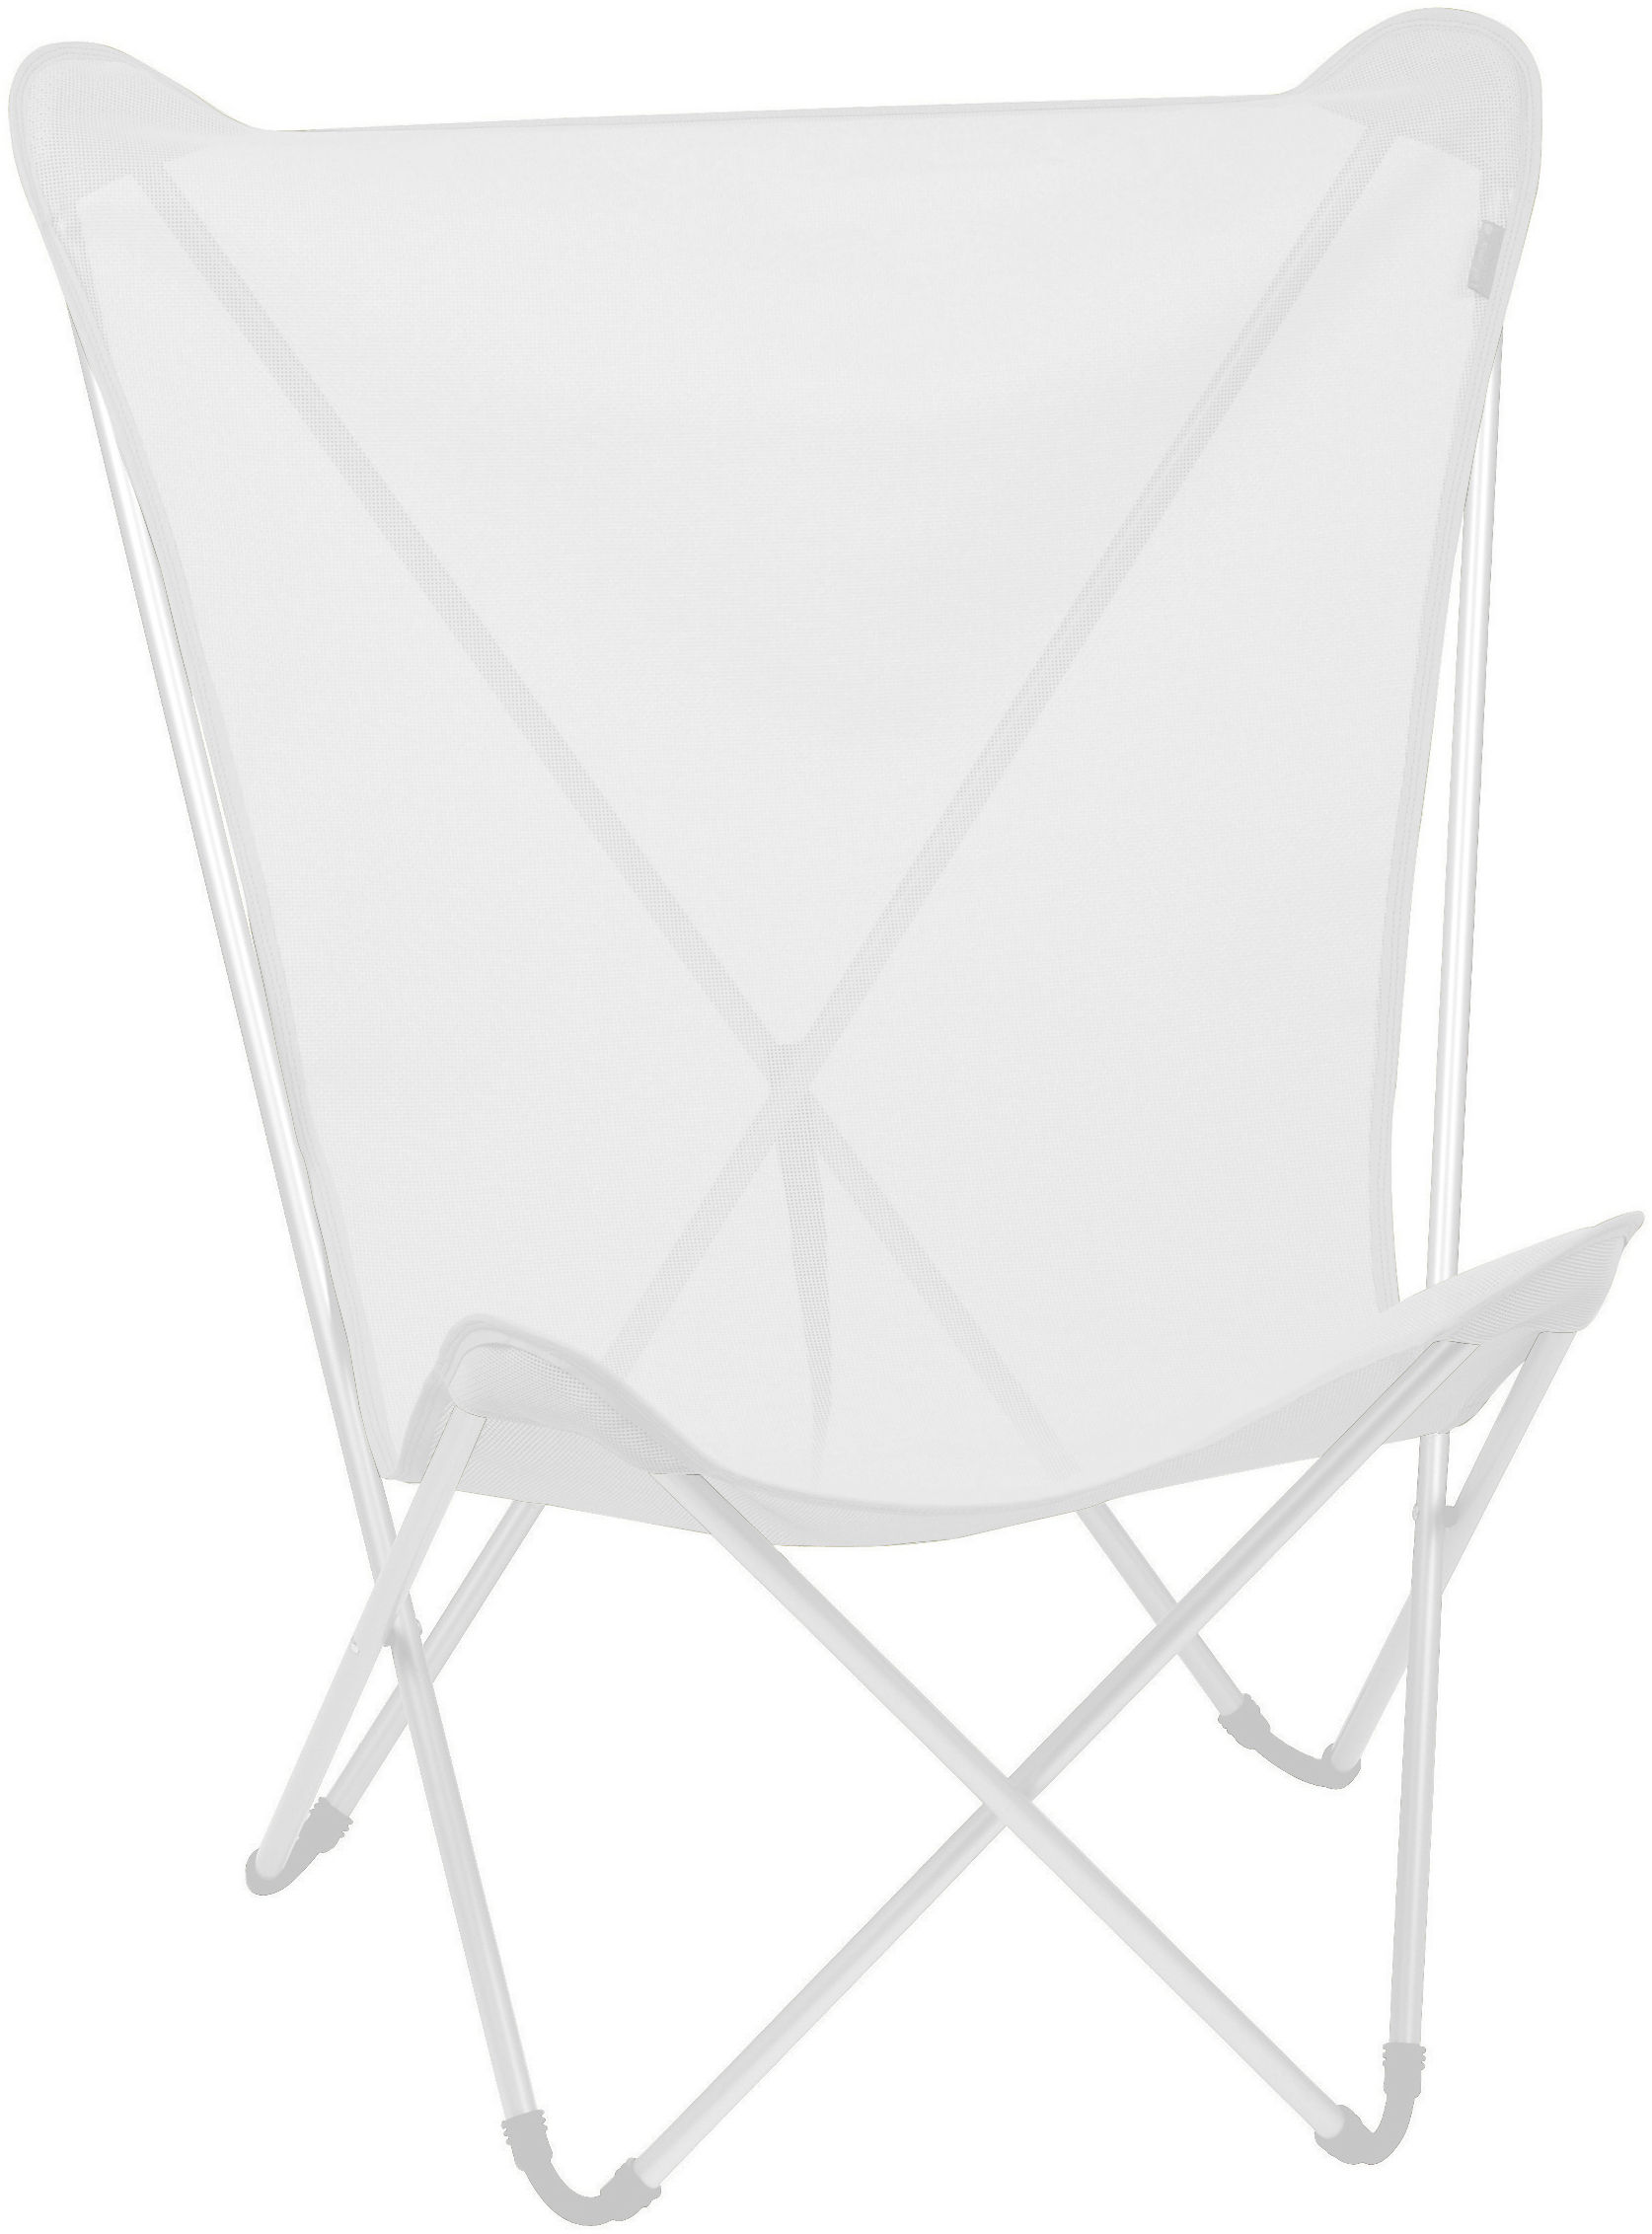 lafuma pop up chair hair cutting cloth by white made in design uk furniture miscellaneous for maxi